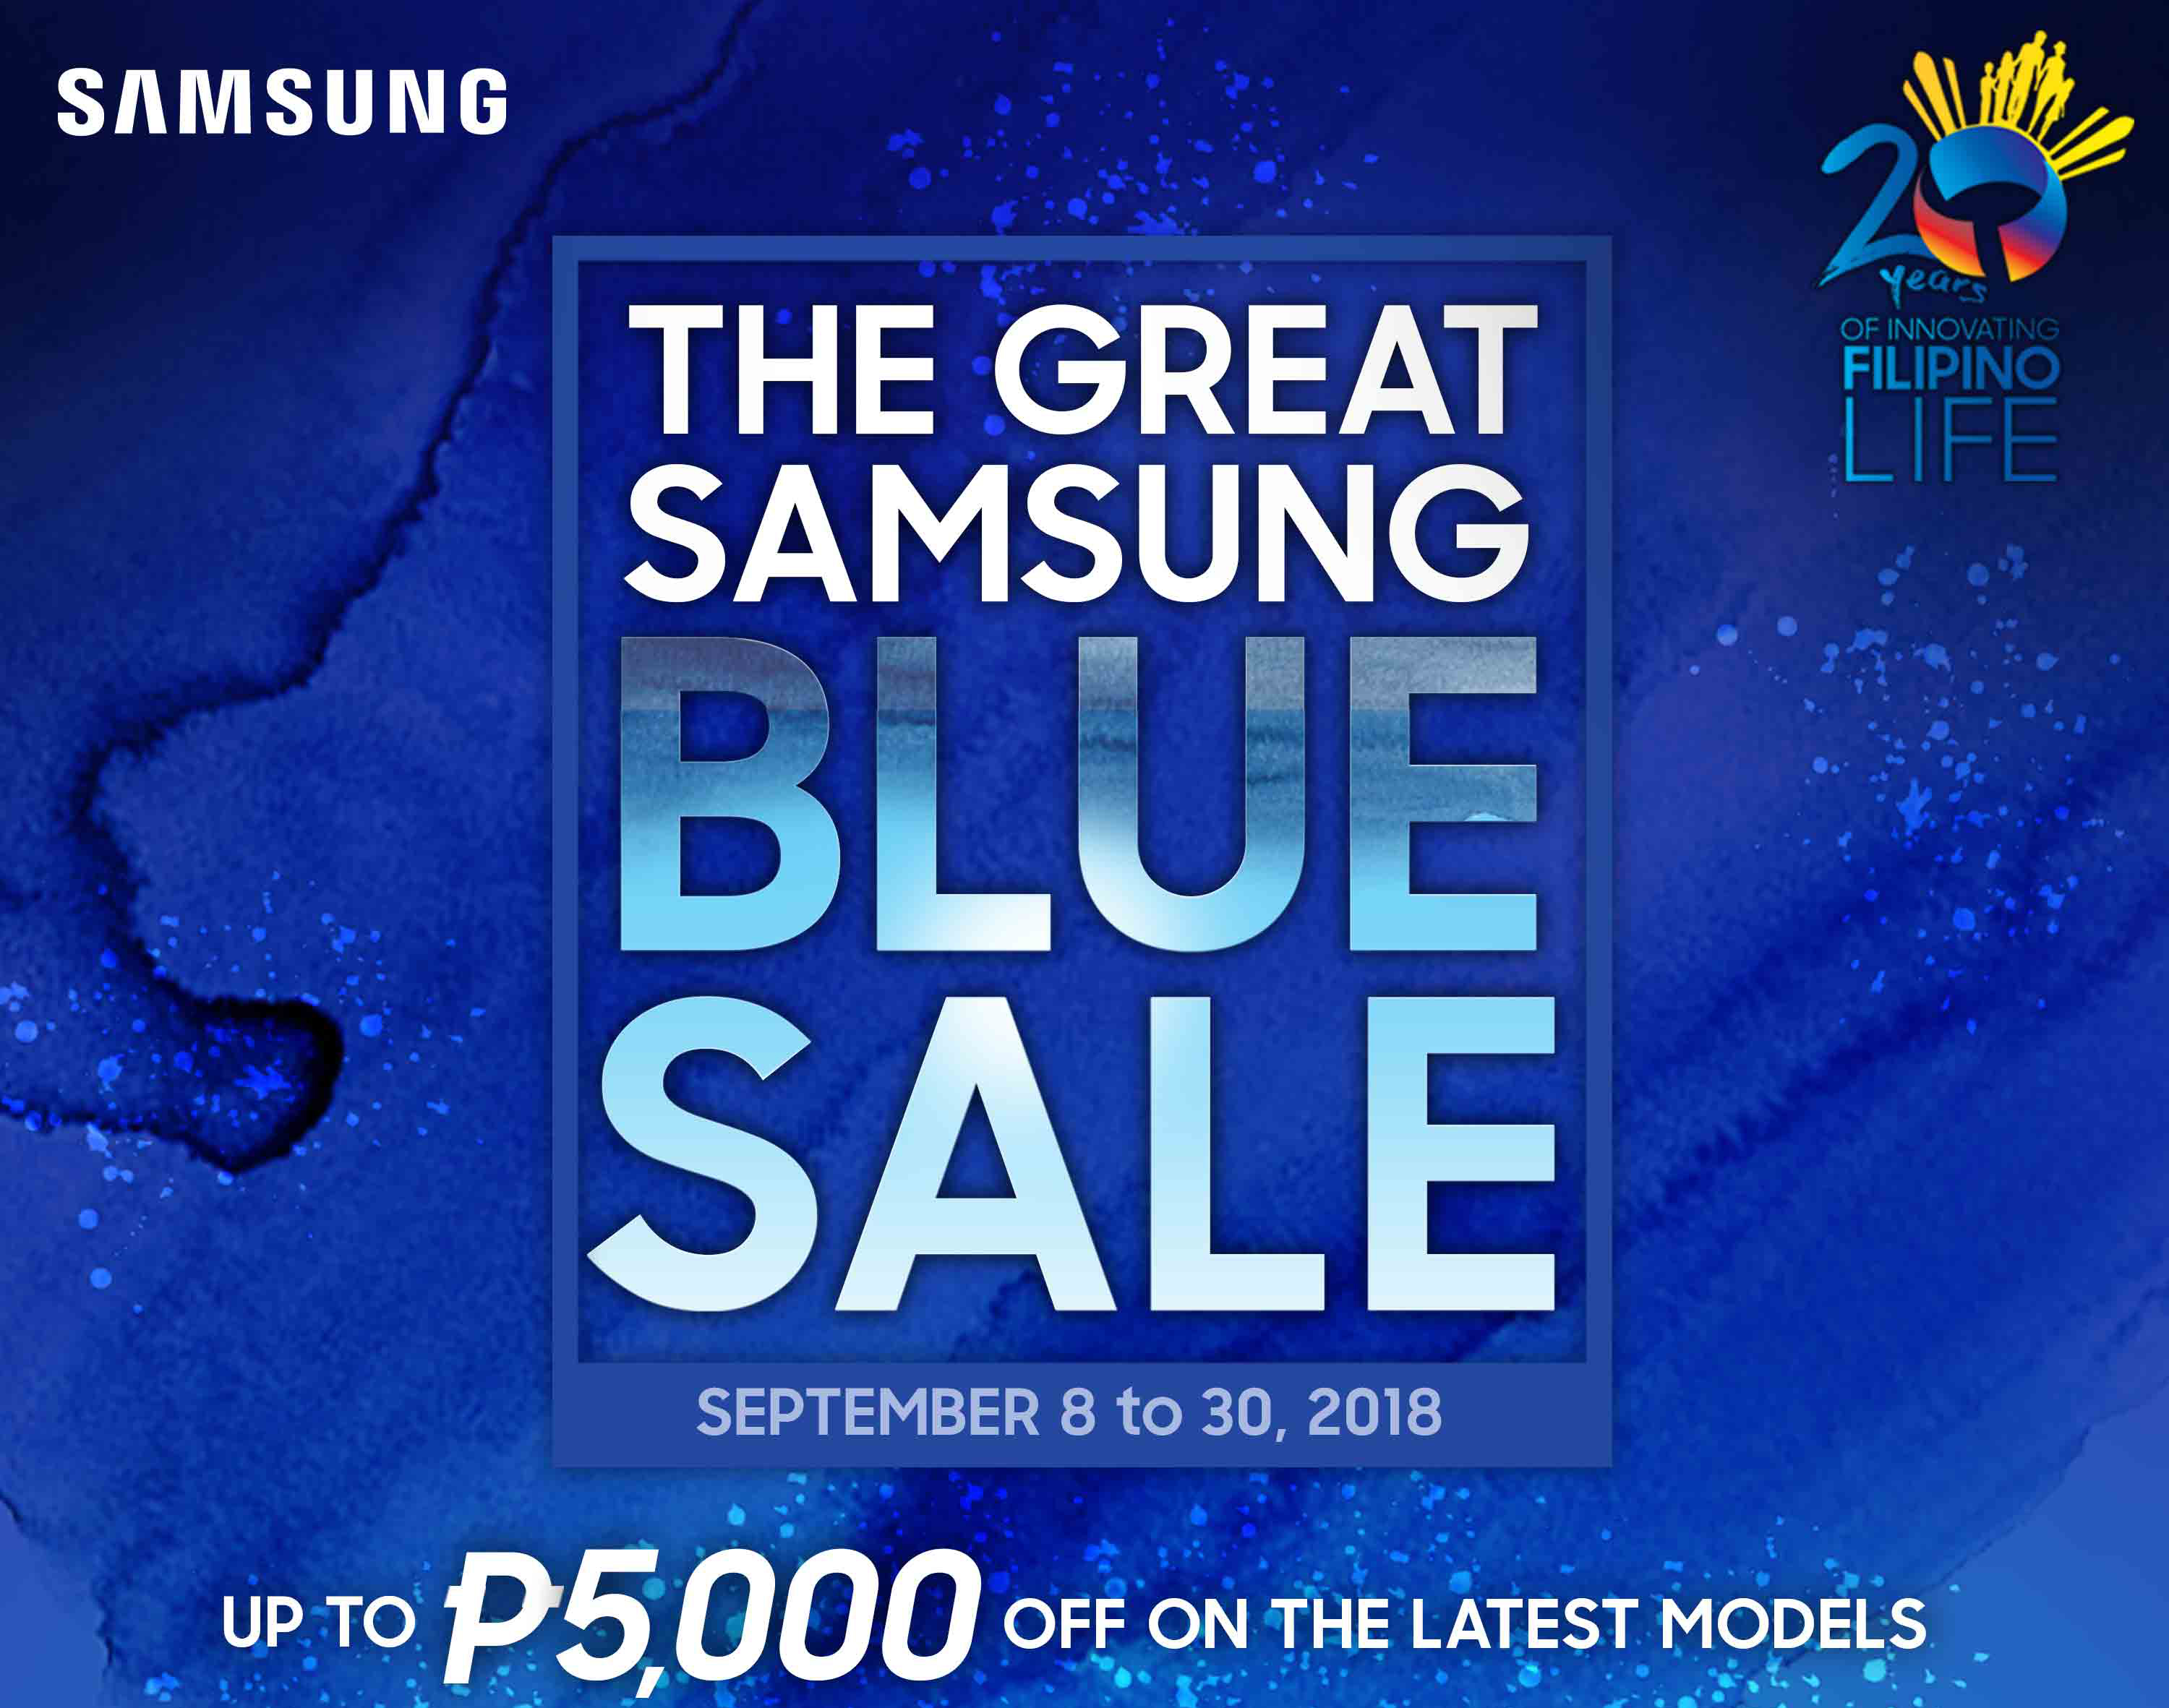 the-great-samsung-blue-sale-is-here